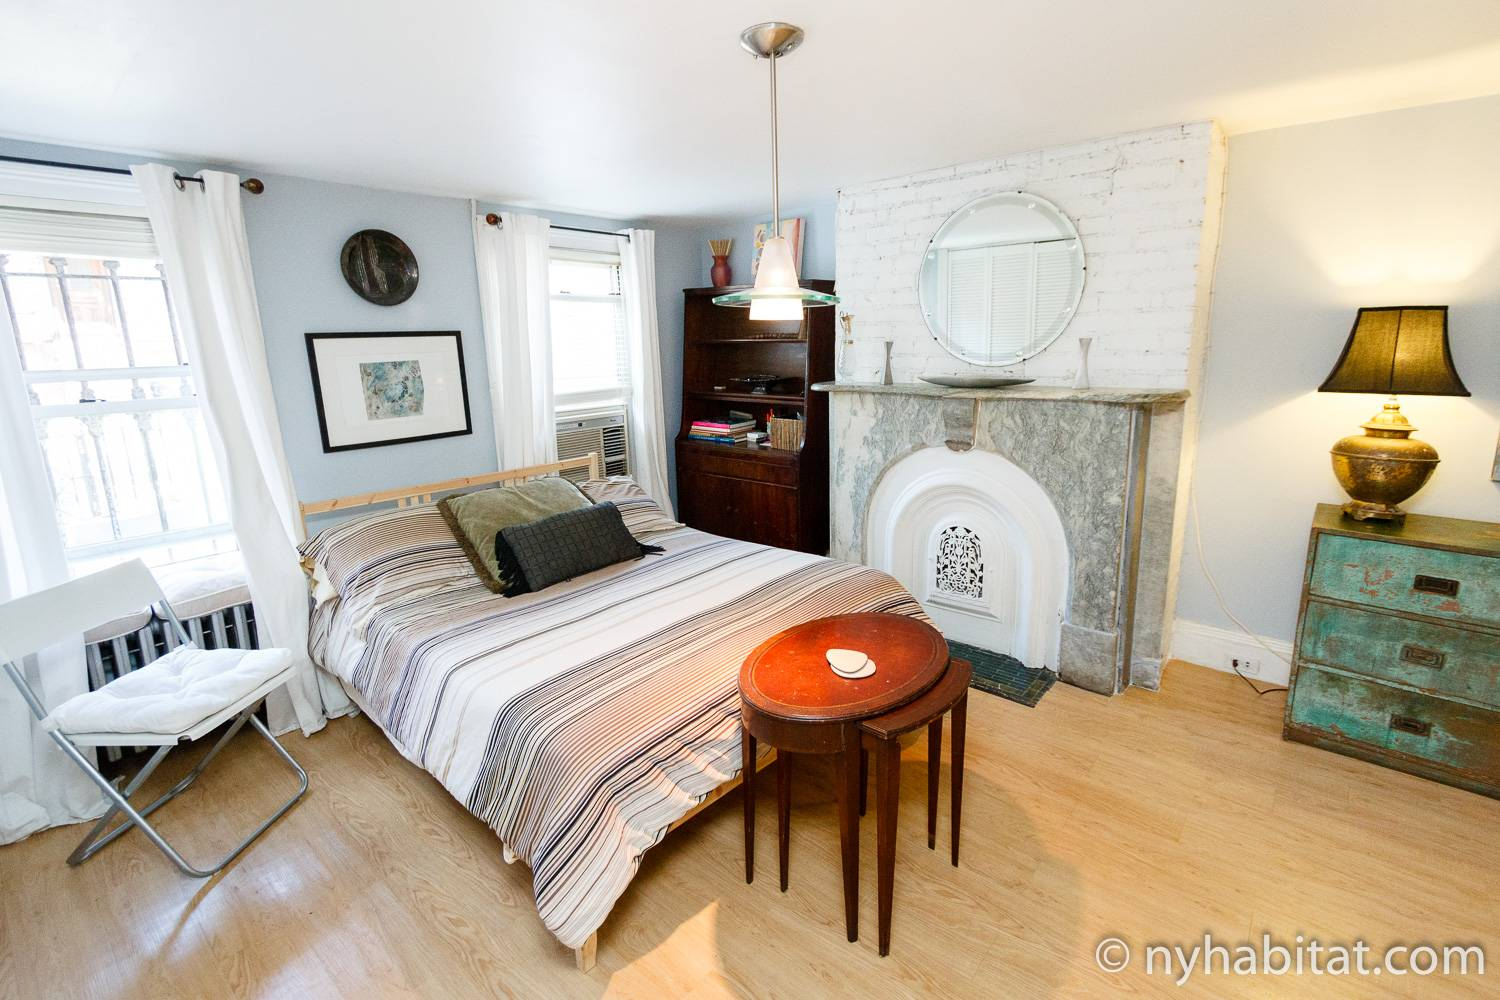 Image of living area of NY-16024 with full-sized bed, bookshelf, and decorative fireplace.